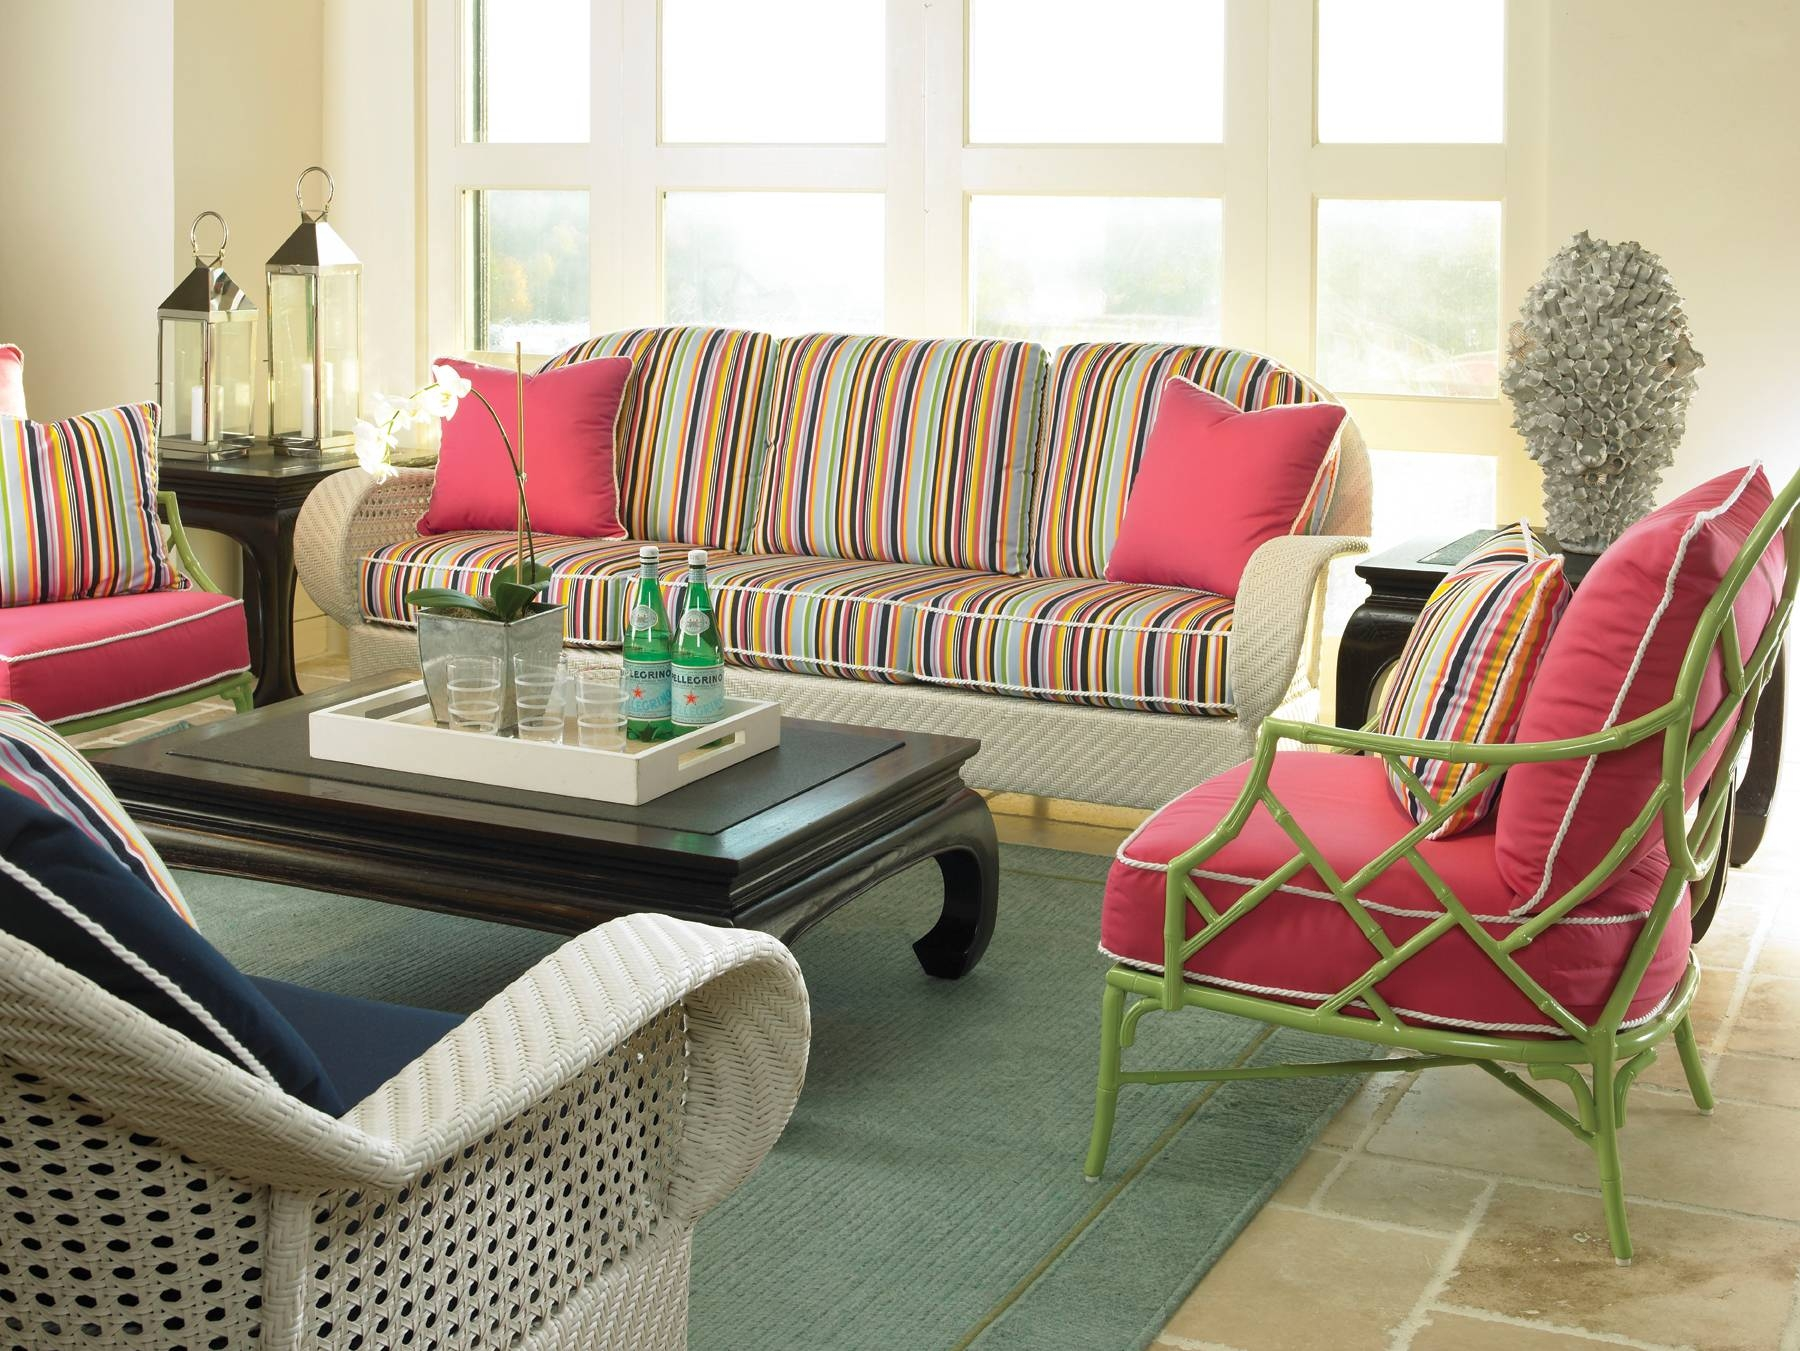 Furniture: Interesting Sunbrella Outdoor Furniture For Patio with Striped Sofas and Chairs (Image 17 of 30)